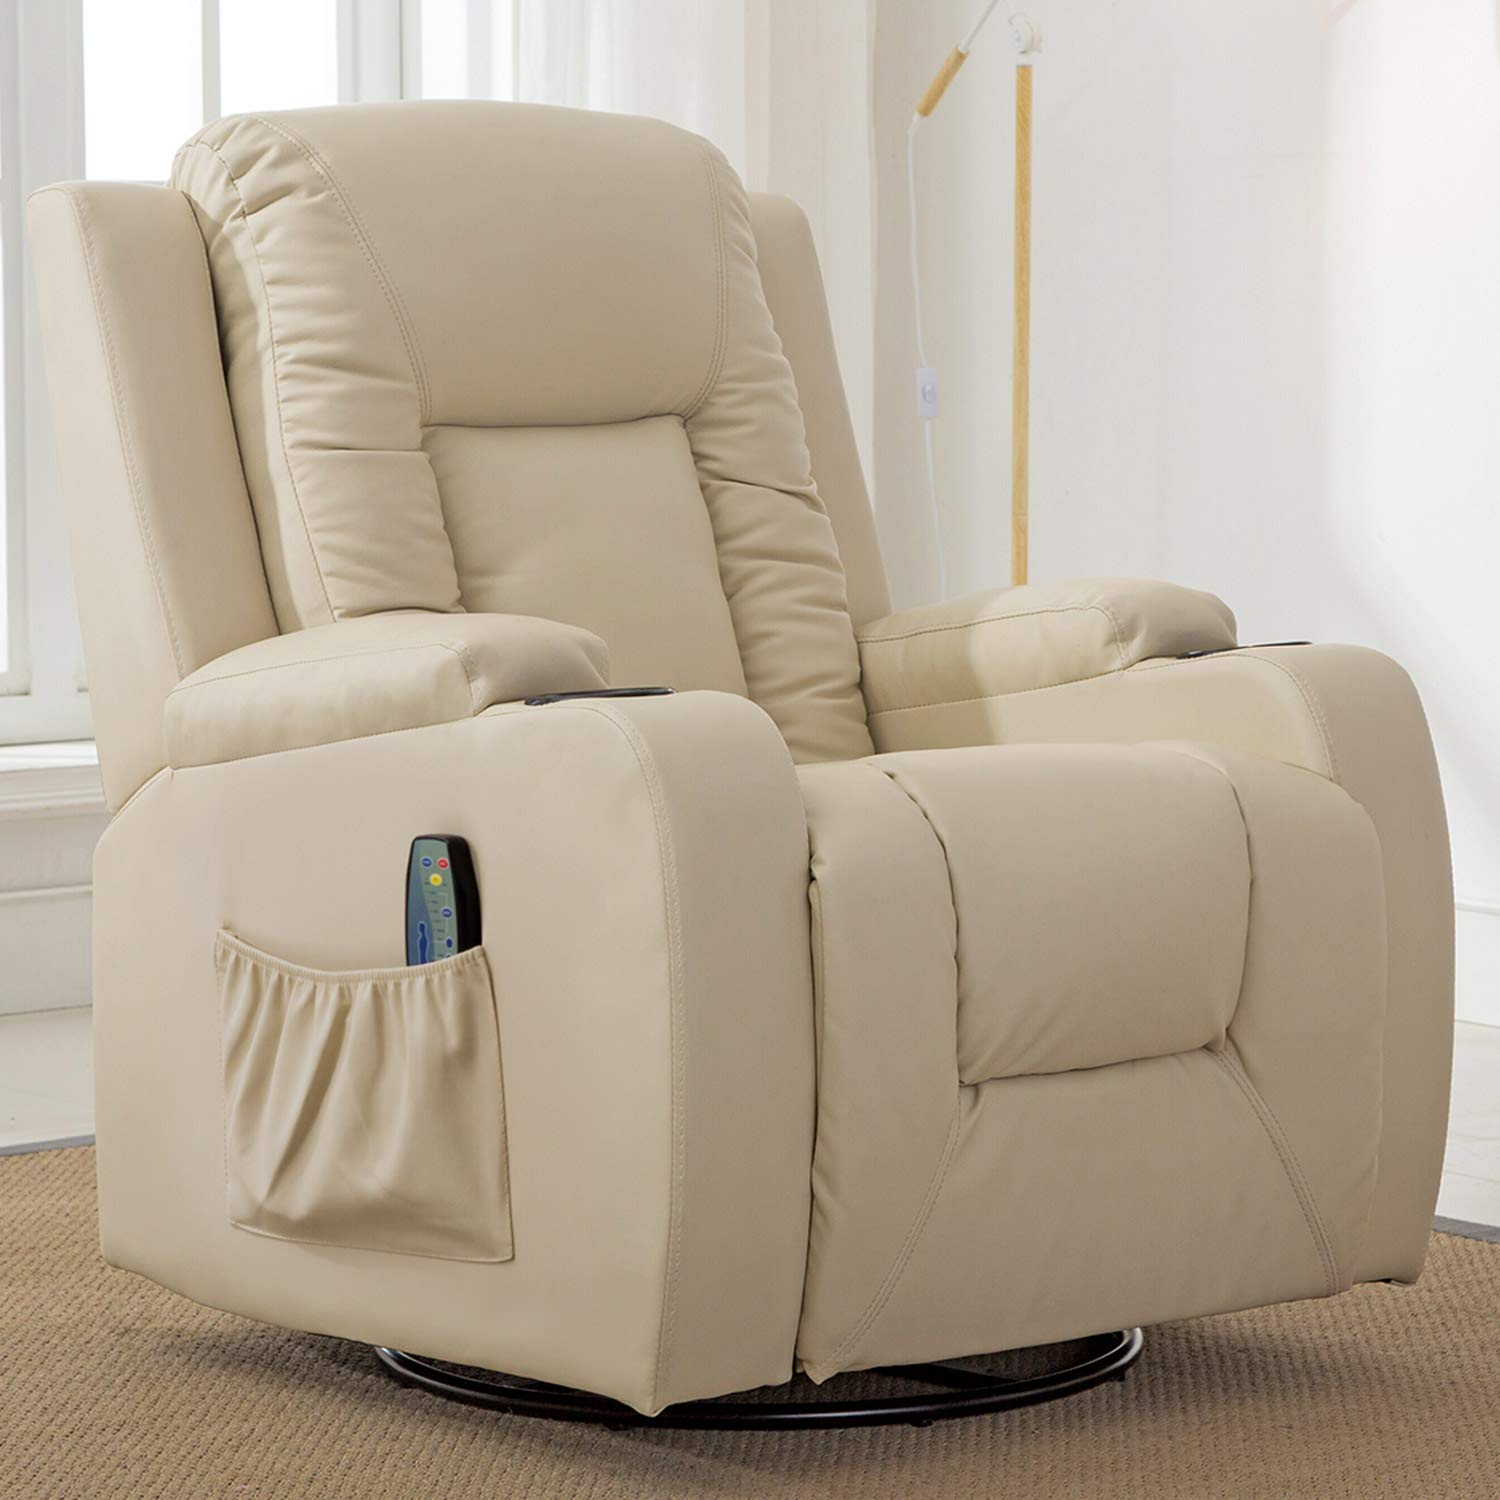 ComHoma Leather Recliner Heated Massage Chair